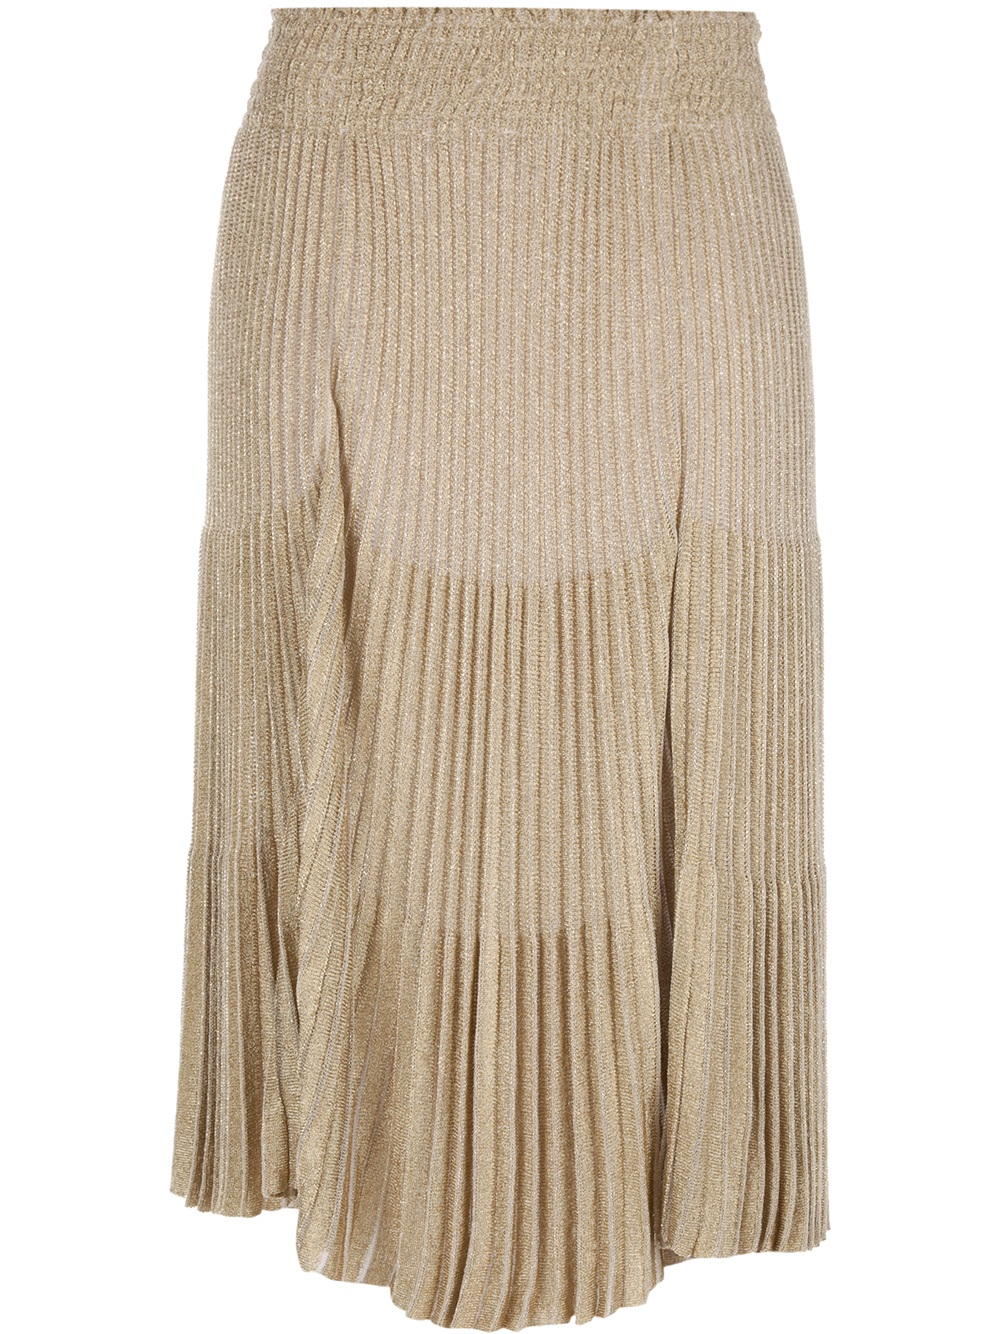 blumarine pleated skirt in gold lyst